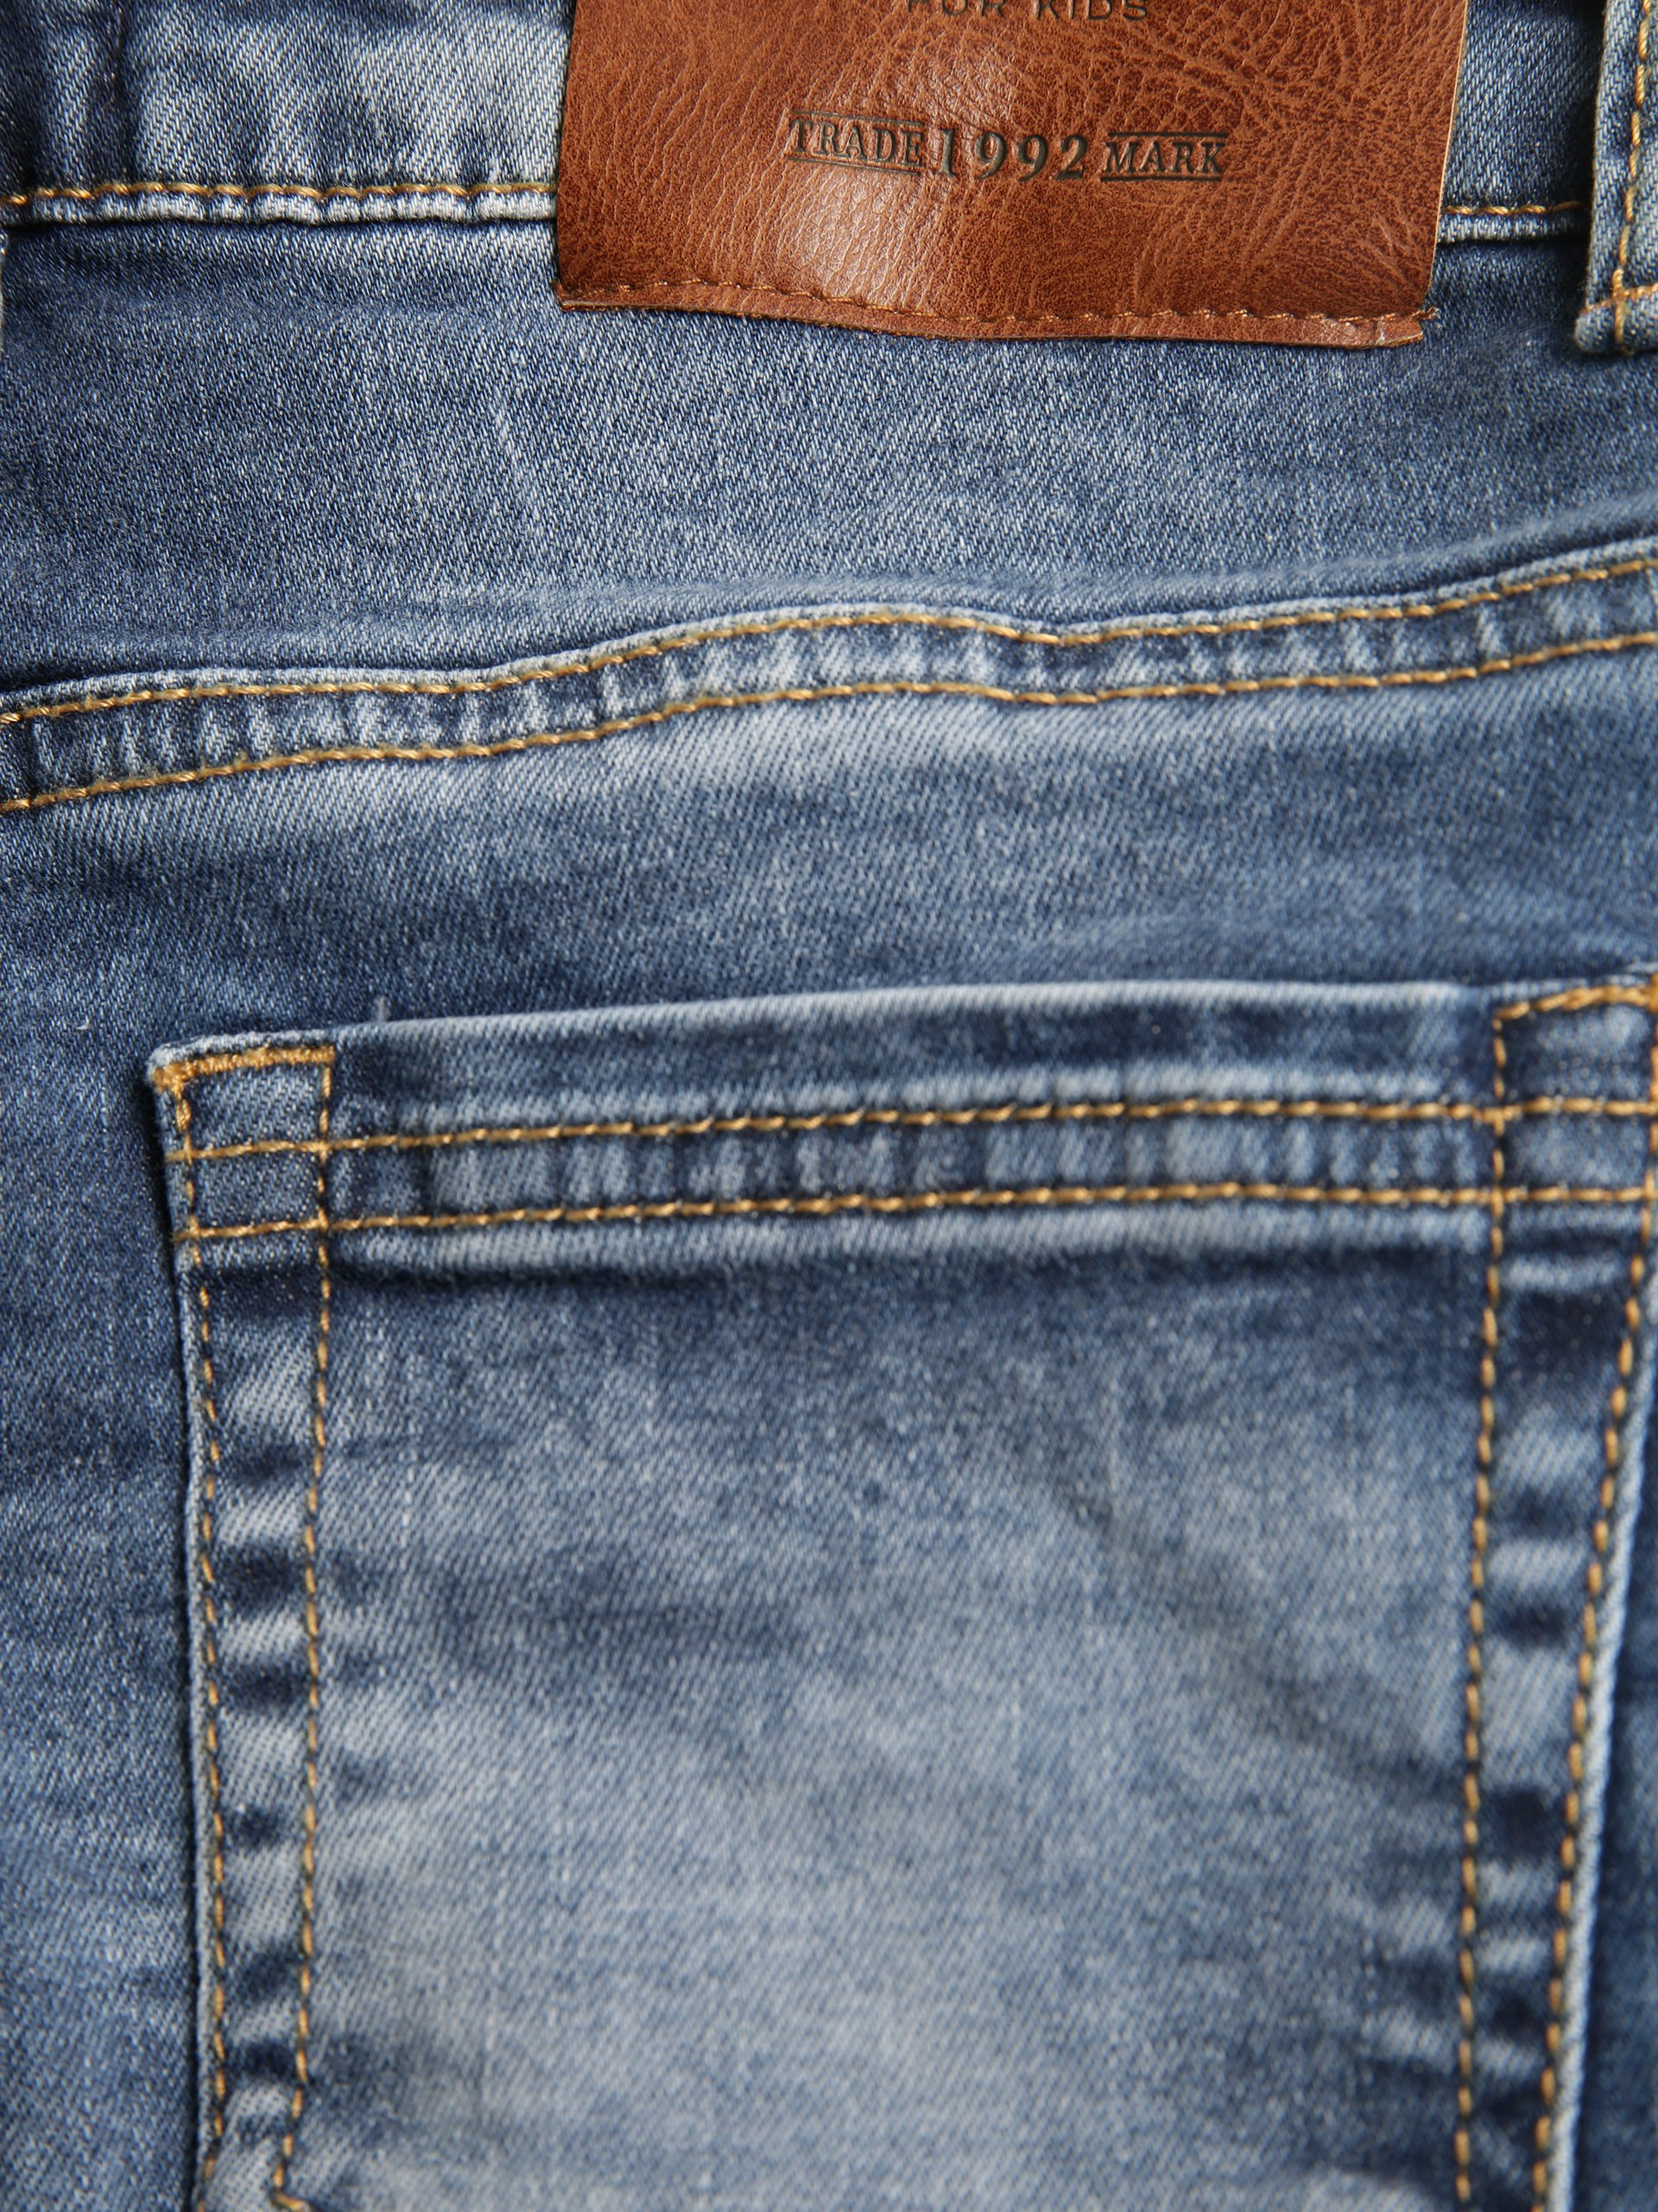 Review Jungen Jeans - Slim Fit